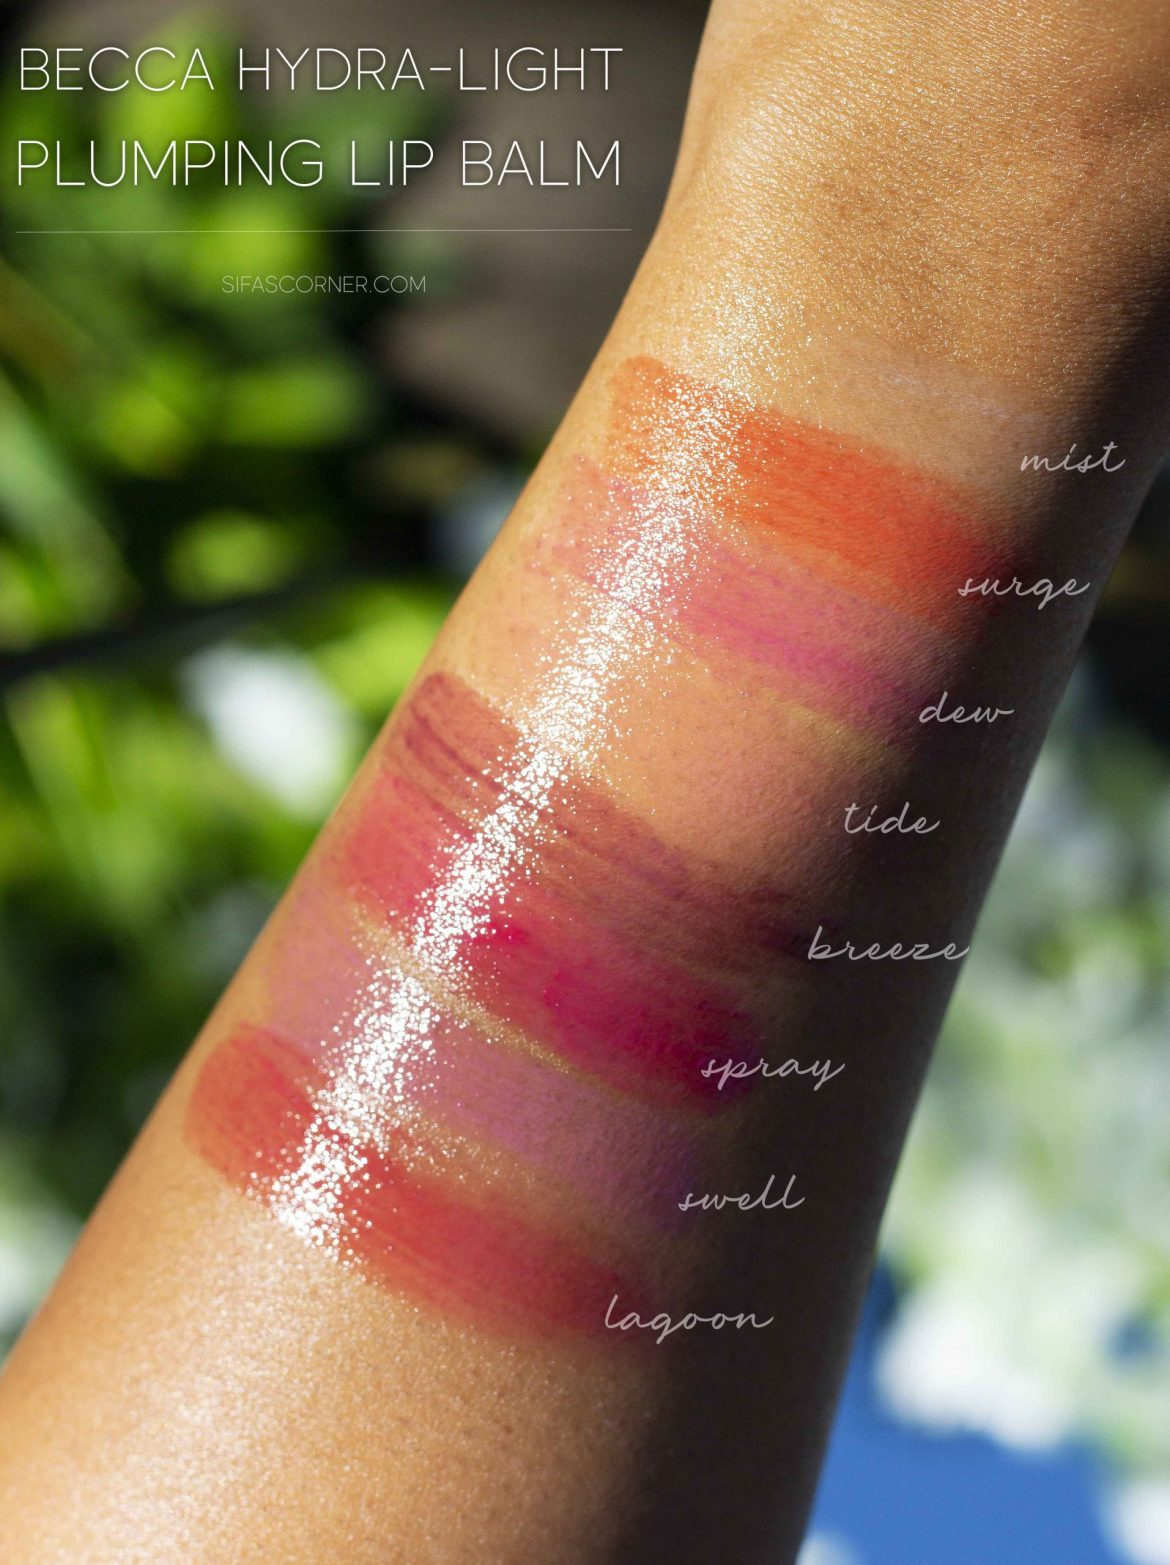 swatches of Becca Hydra-Light Plumping Lip Balms